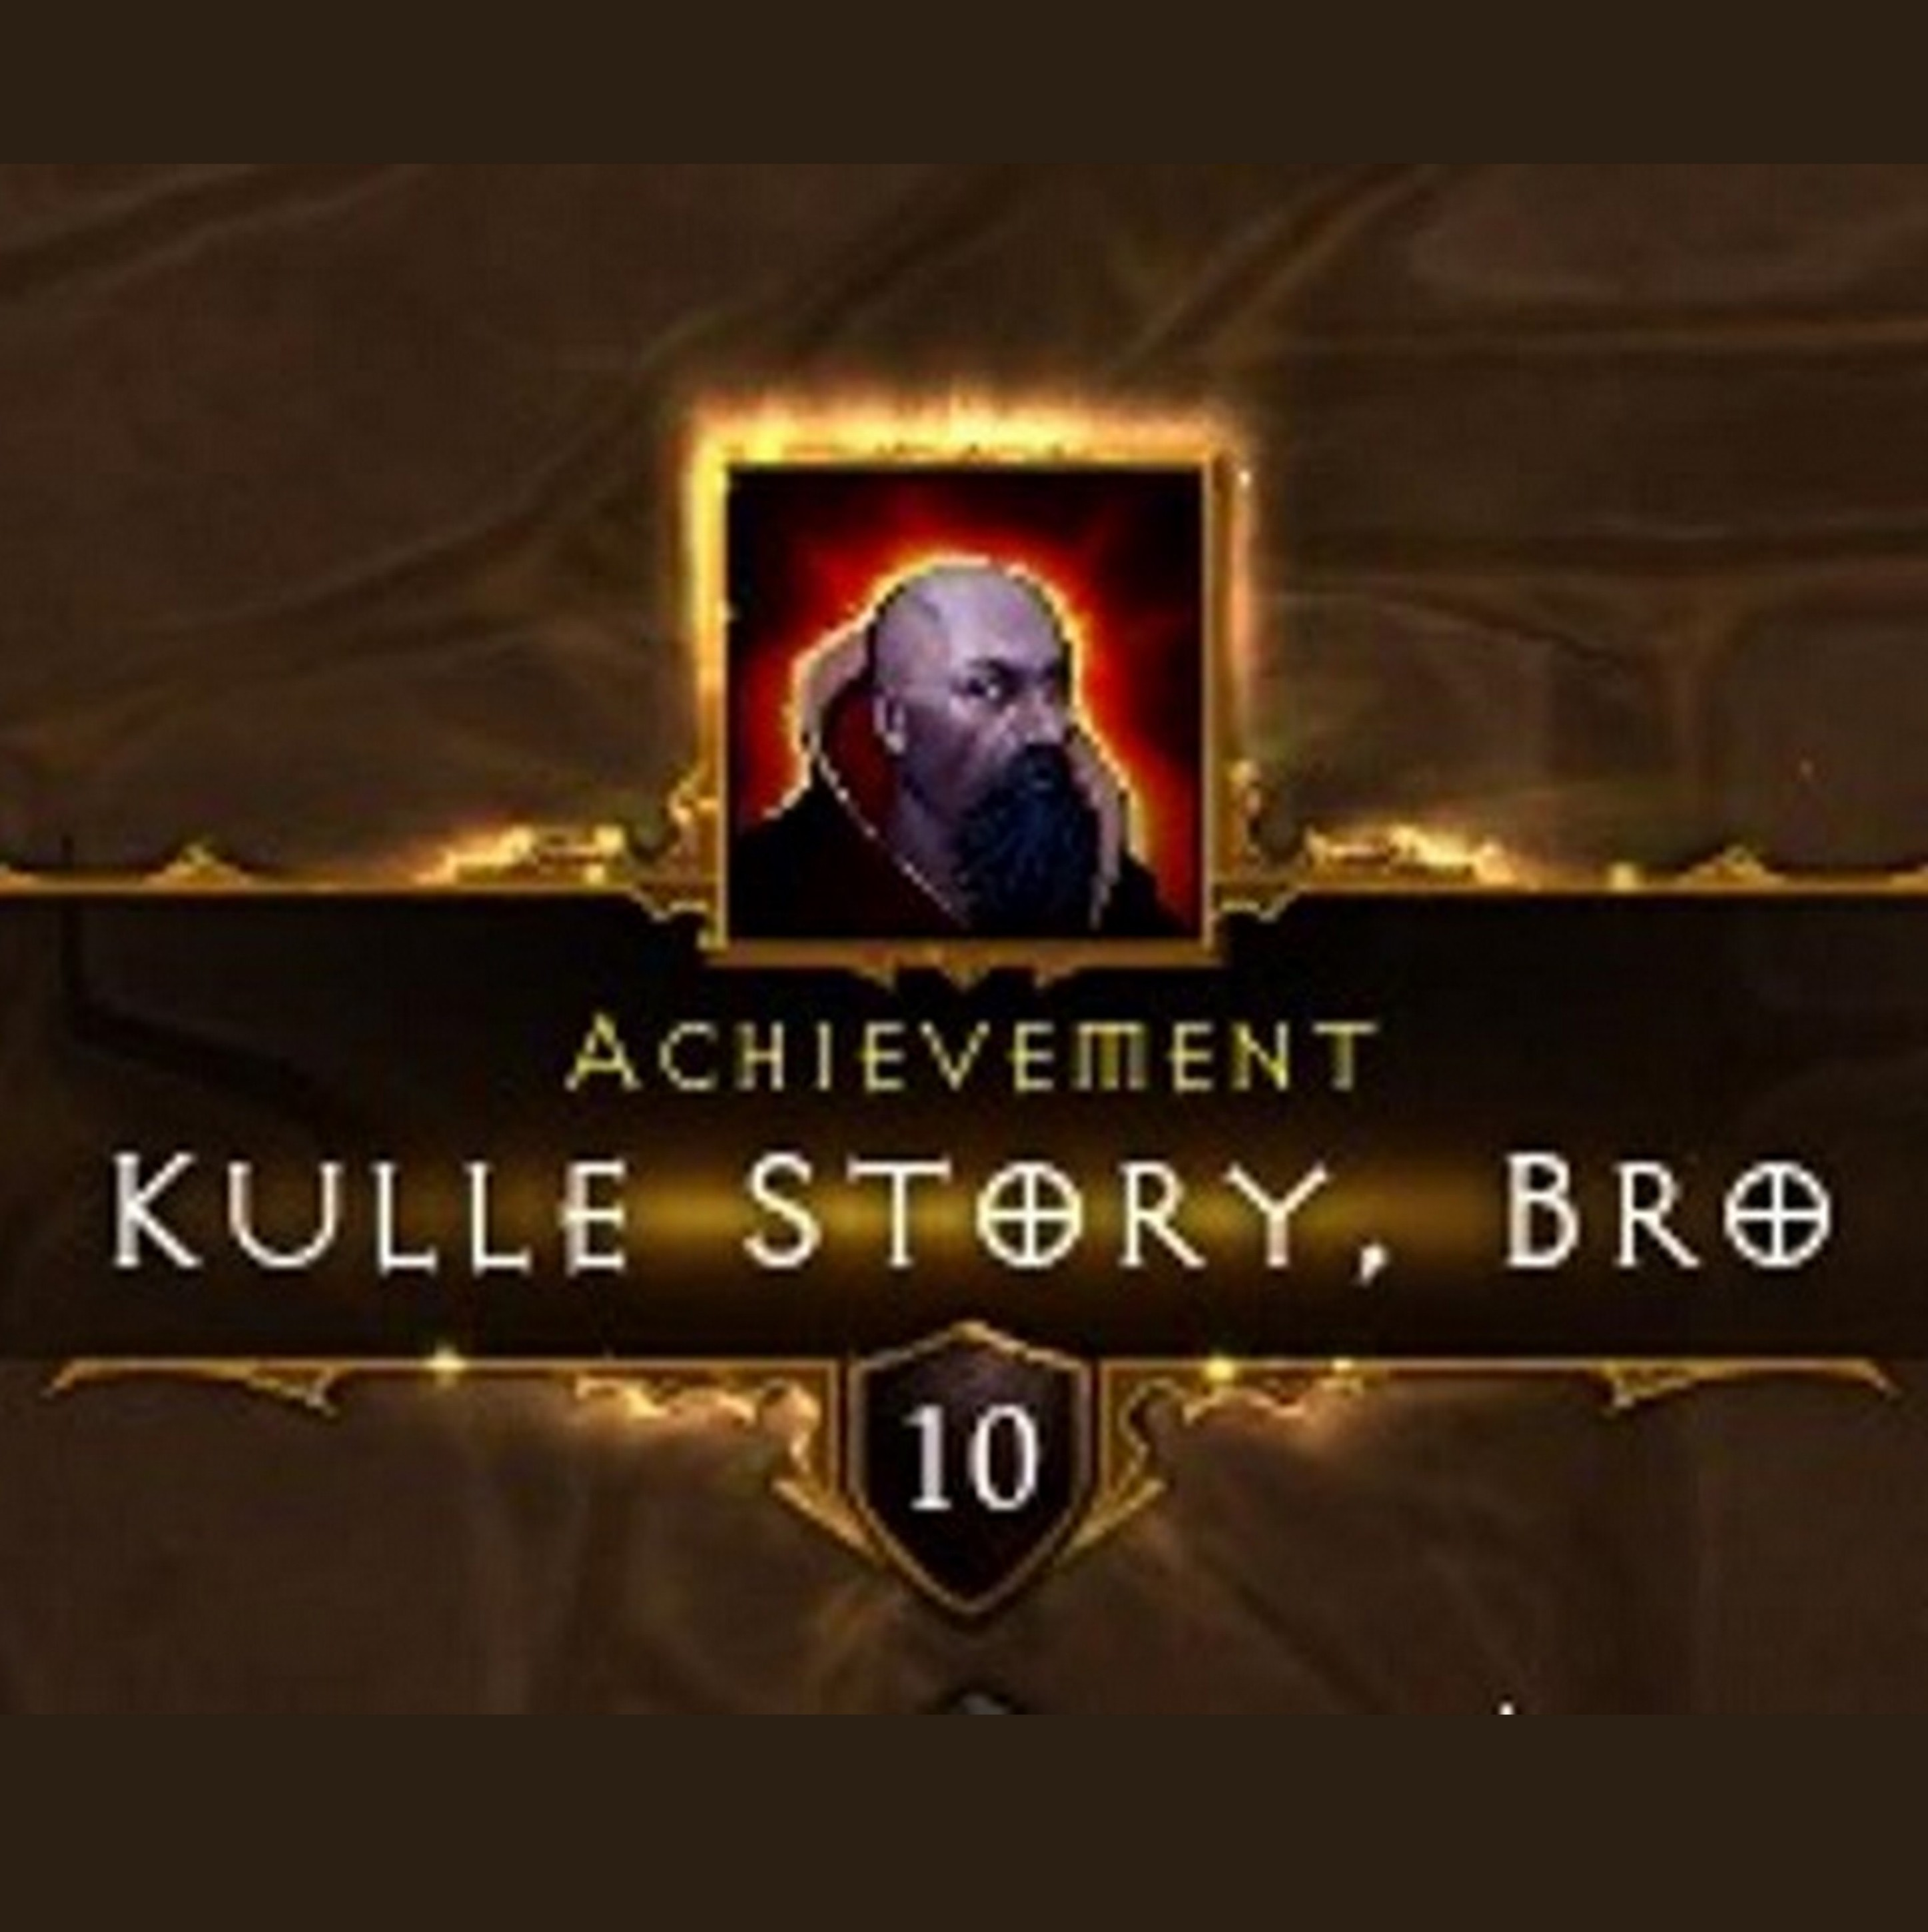 Kulle Story Bro - A Diablo 3 Podcast Episode 34